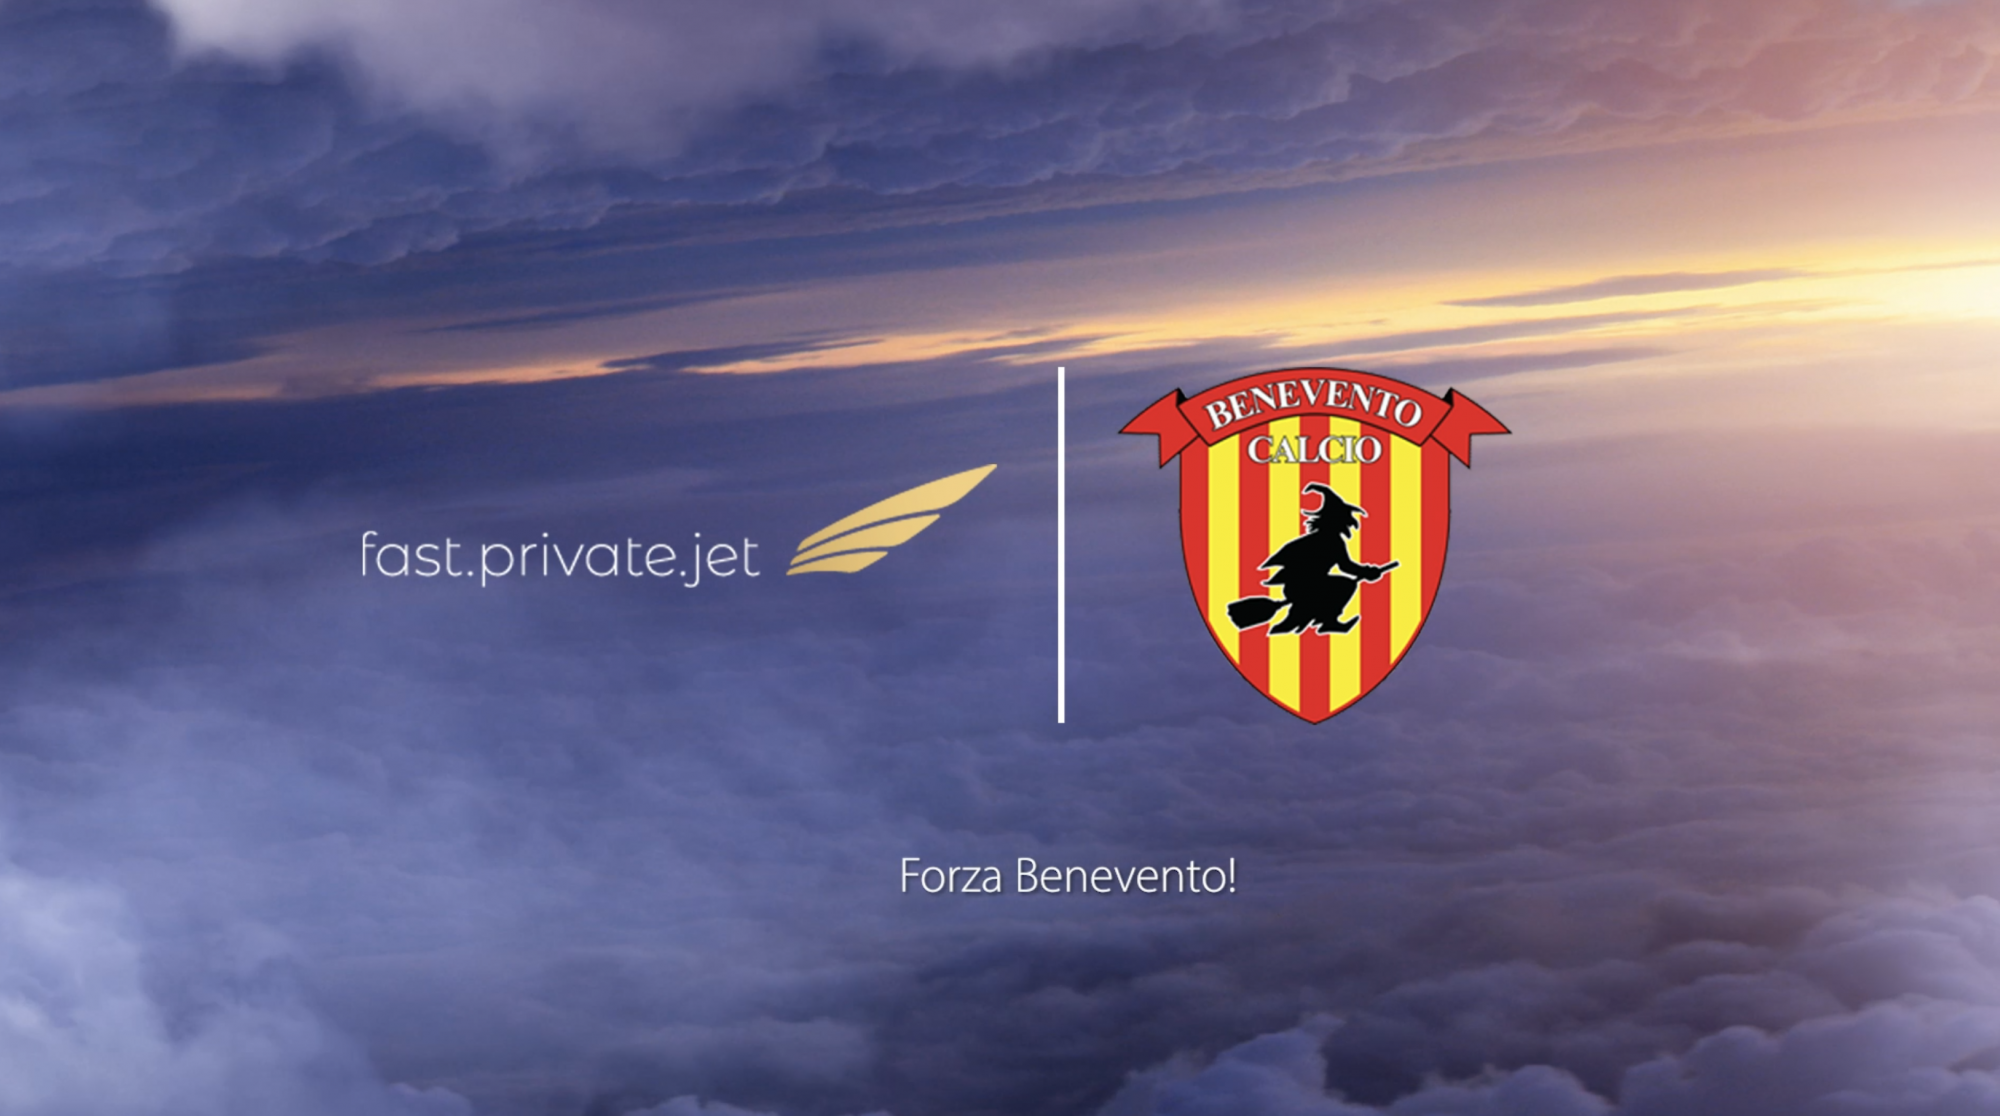 Benevento Calcio - Fast Private Jet